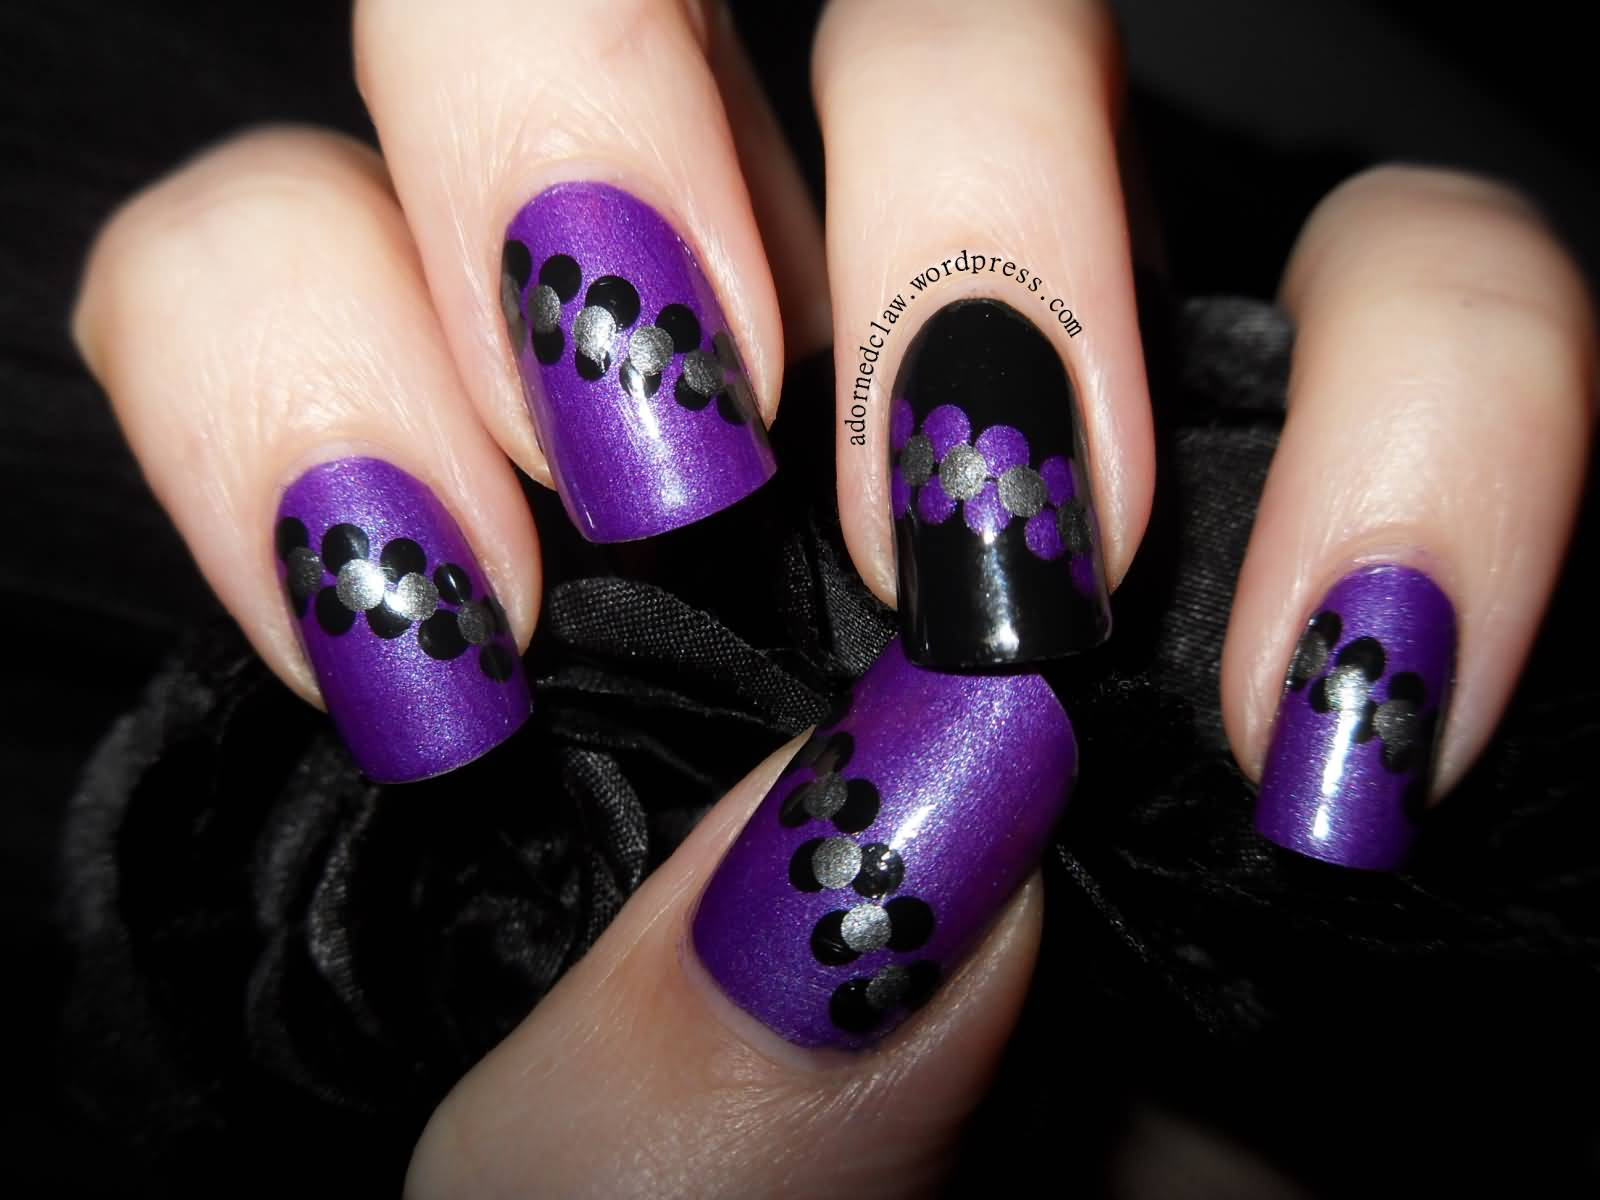 Purple Nails With Black And Silver Polka Dots Nail Art